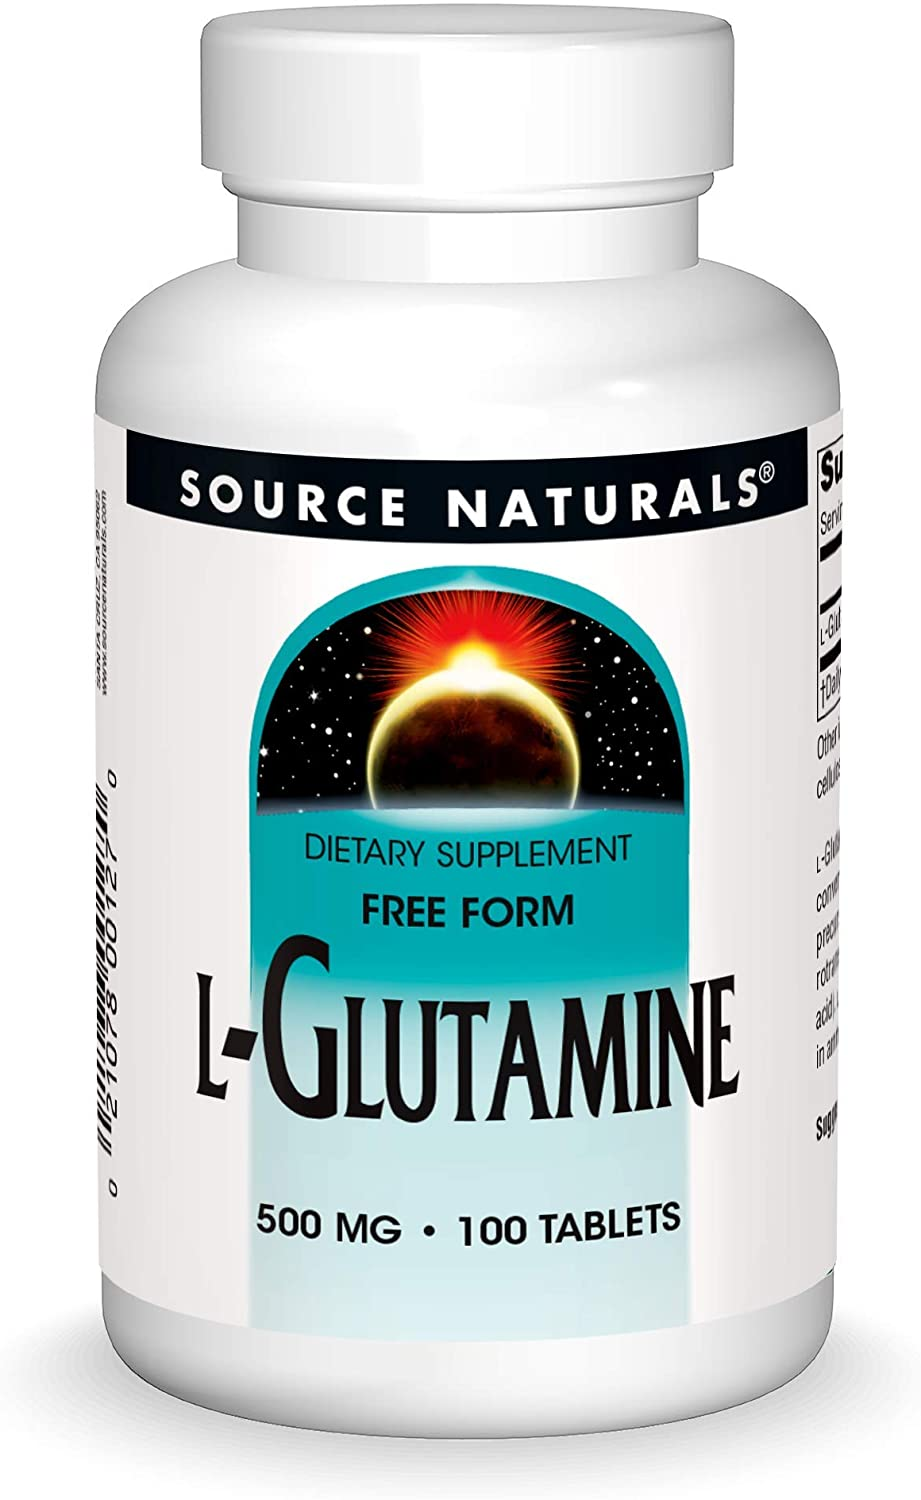 Source Naturals L-Glutamine - Free Form Amino Acid That Supports Metabolic Energy - 100 Tablets